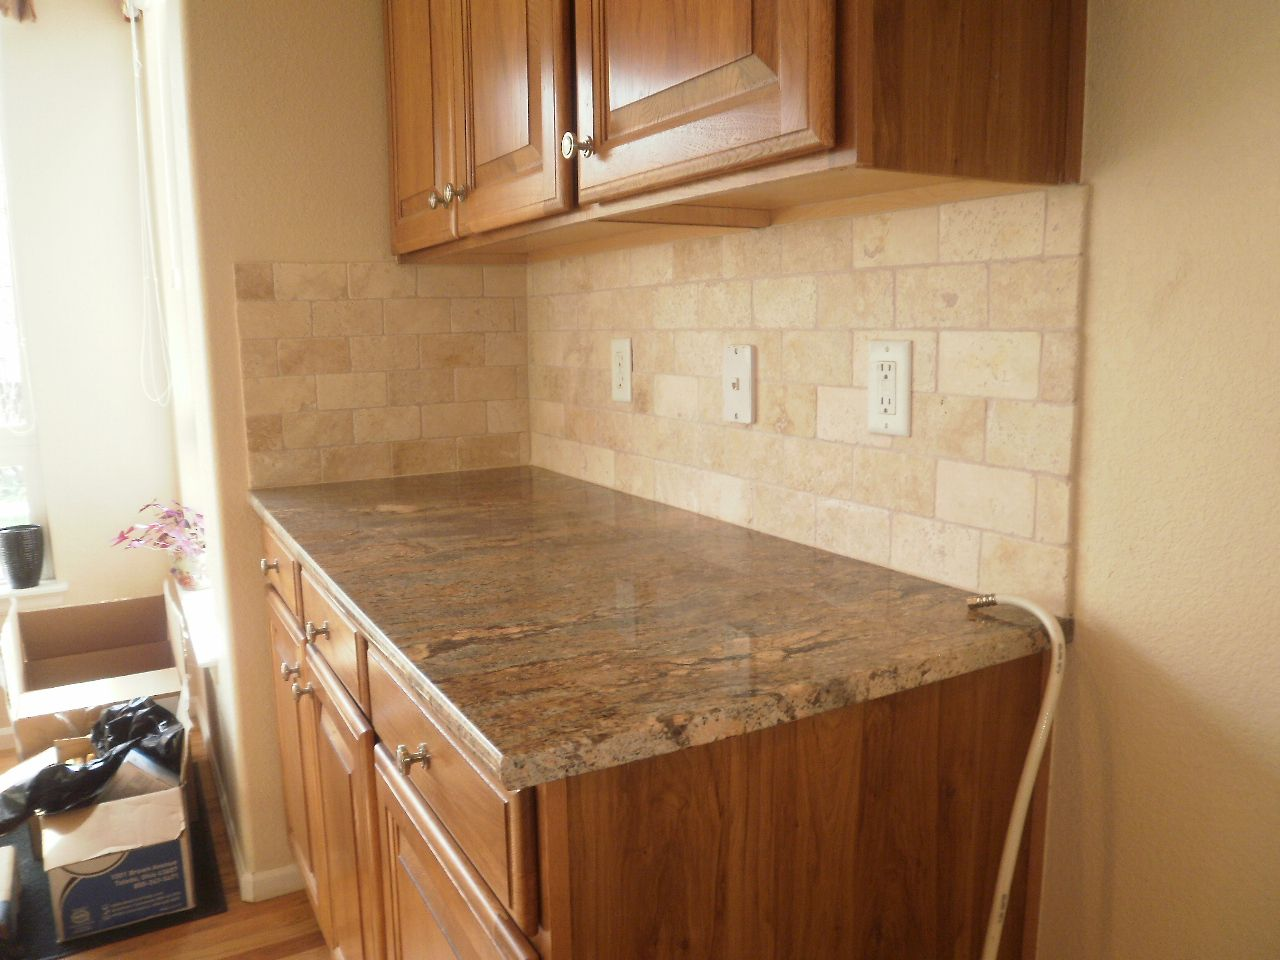 Travertine Tile Patterns For Kitchens Range Backsplash 3x6 Tumbled Ivory Travertine